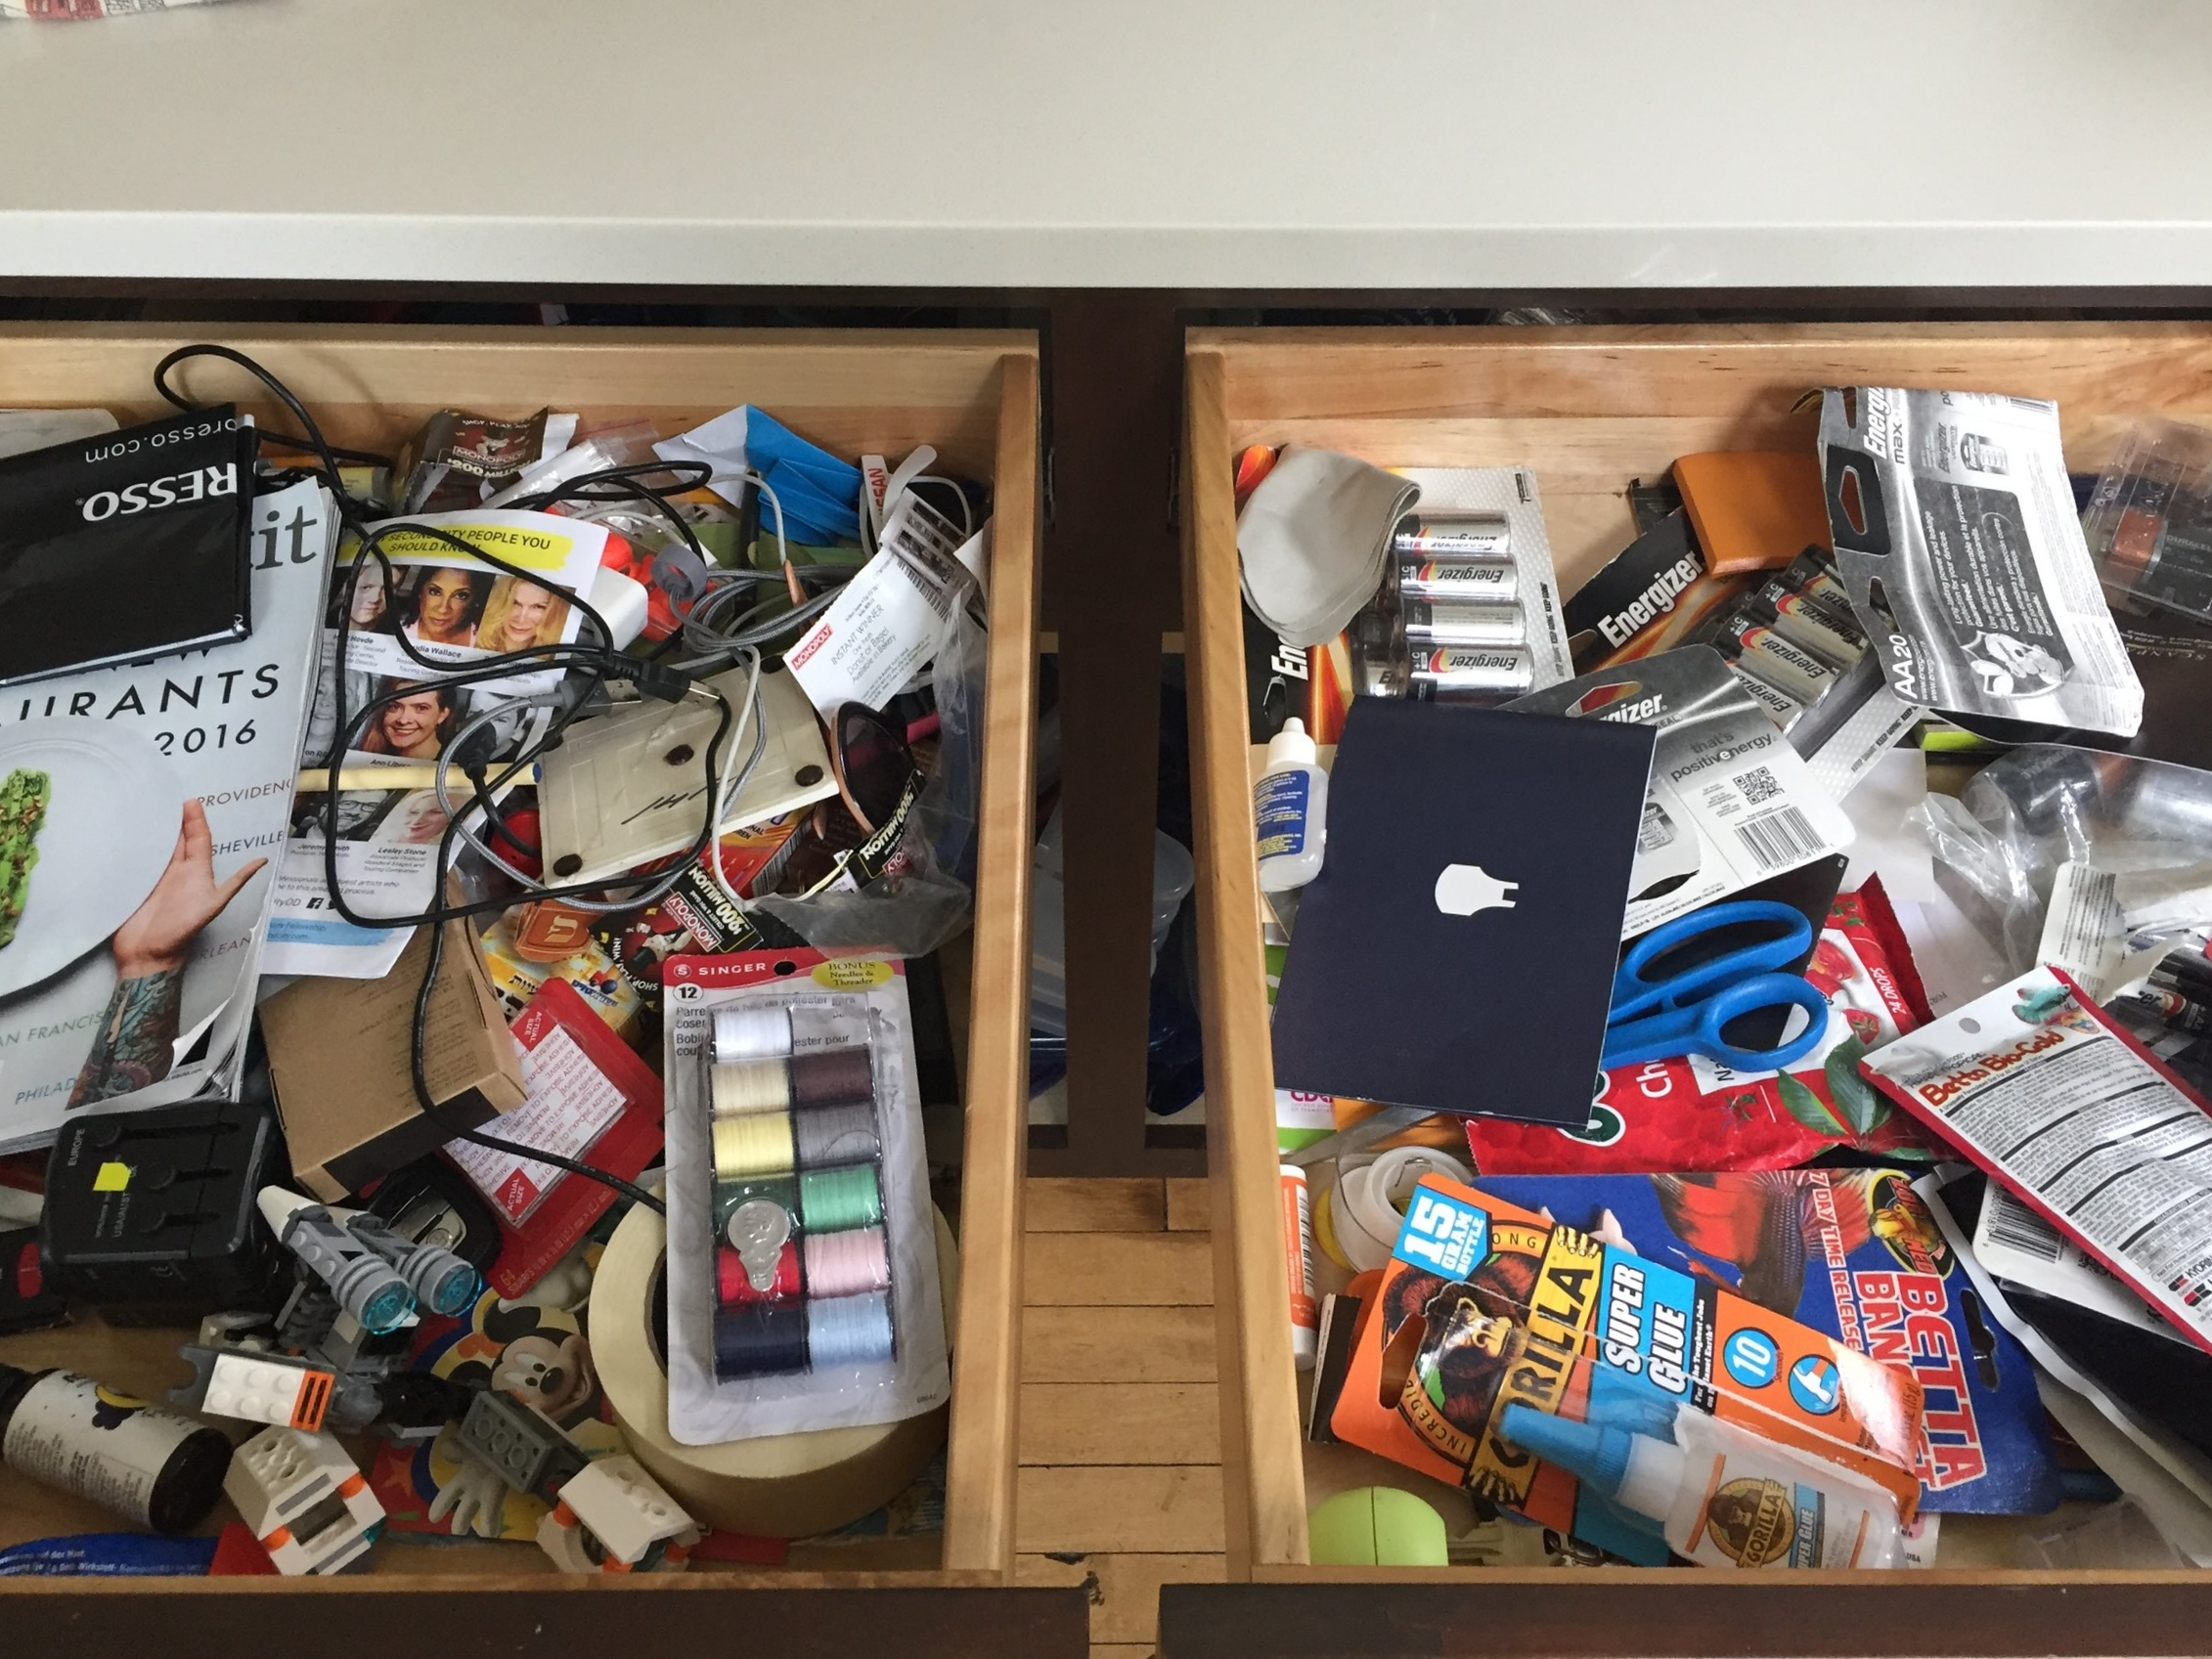 Everyone has a junk drawer, right?